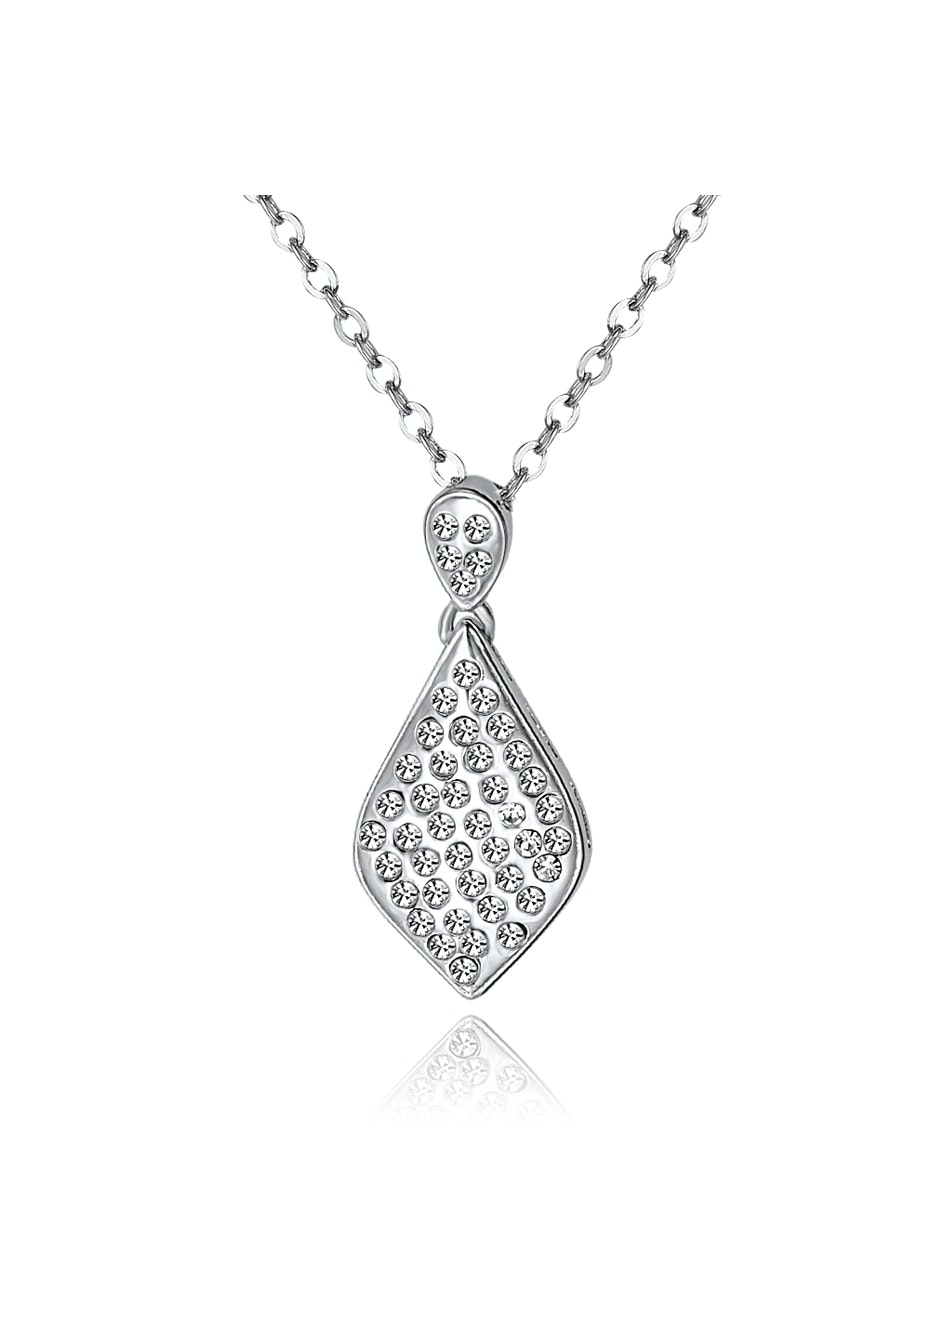 Solid 925 Pendant Set Embellished with Crystals from Swarovski